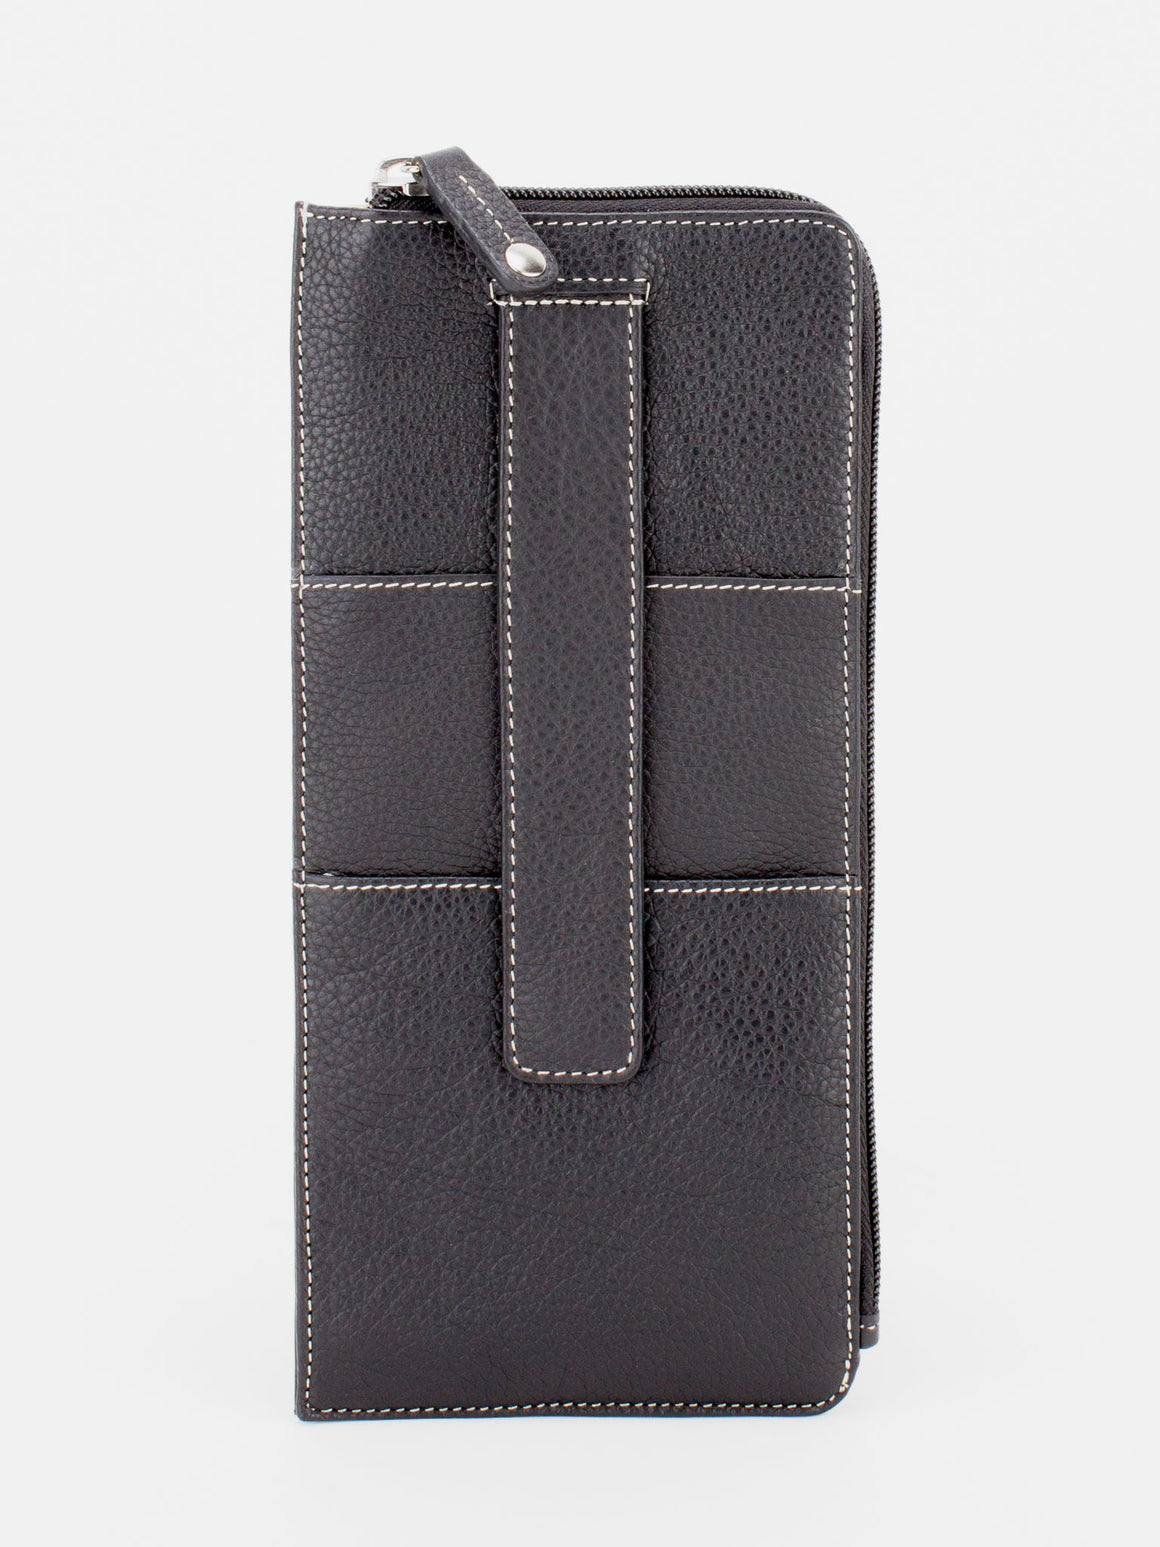 Skyler Leather Travel Wallet - Black